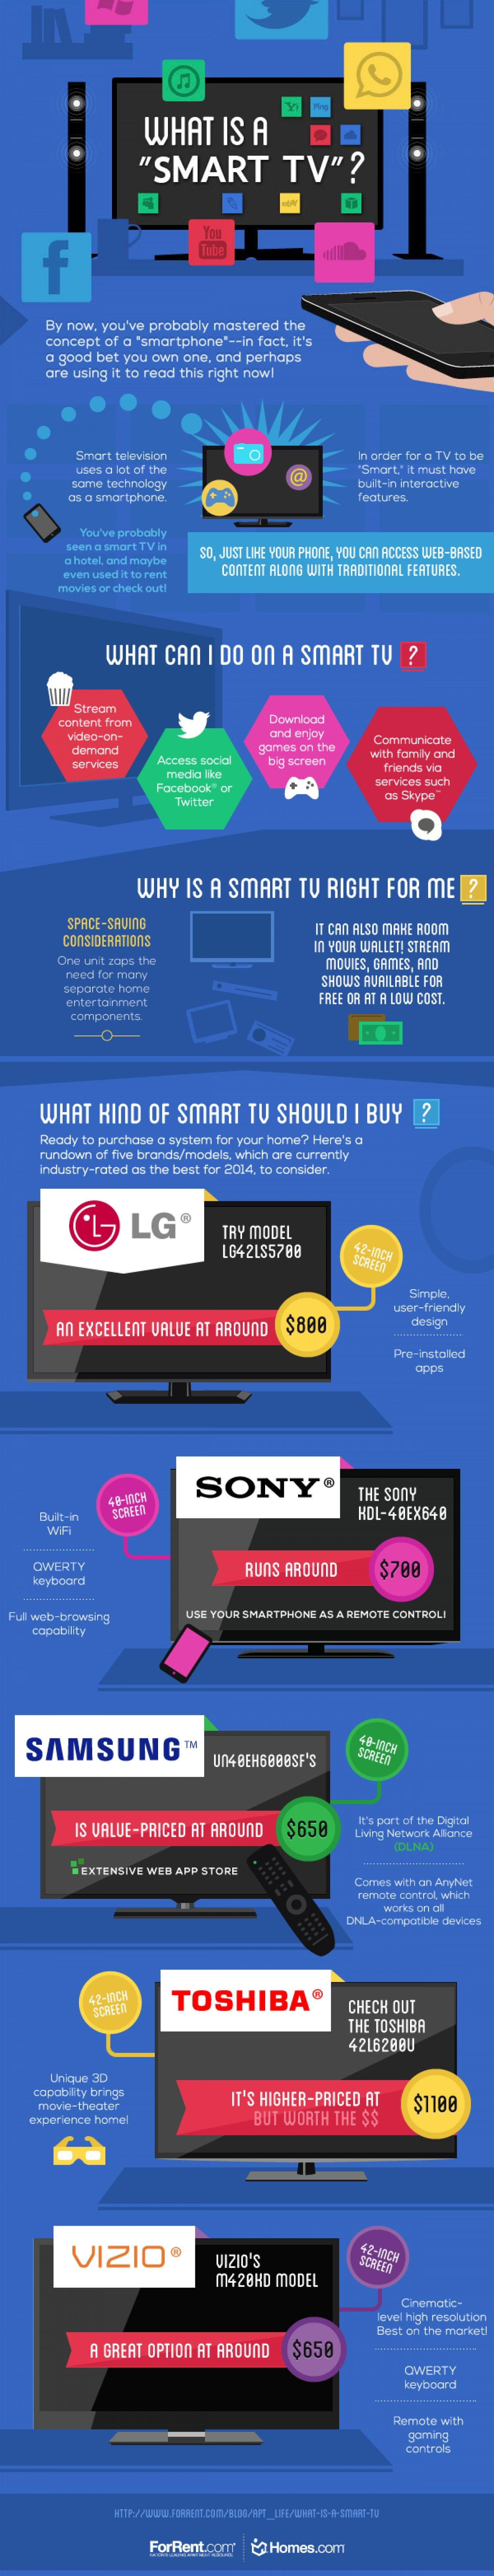 """What Is A """"Smart TV""""? [Infographic]"""